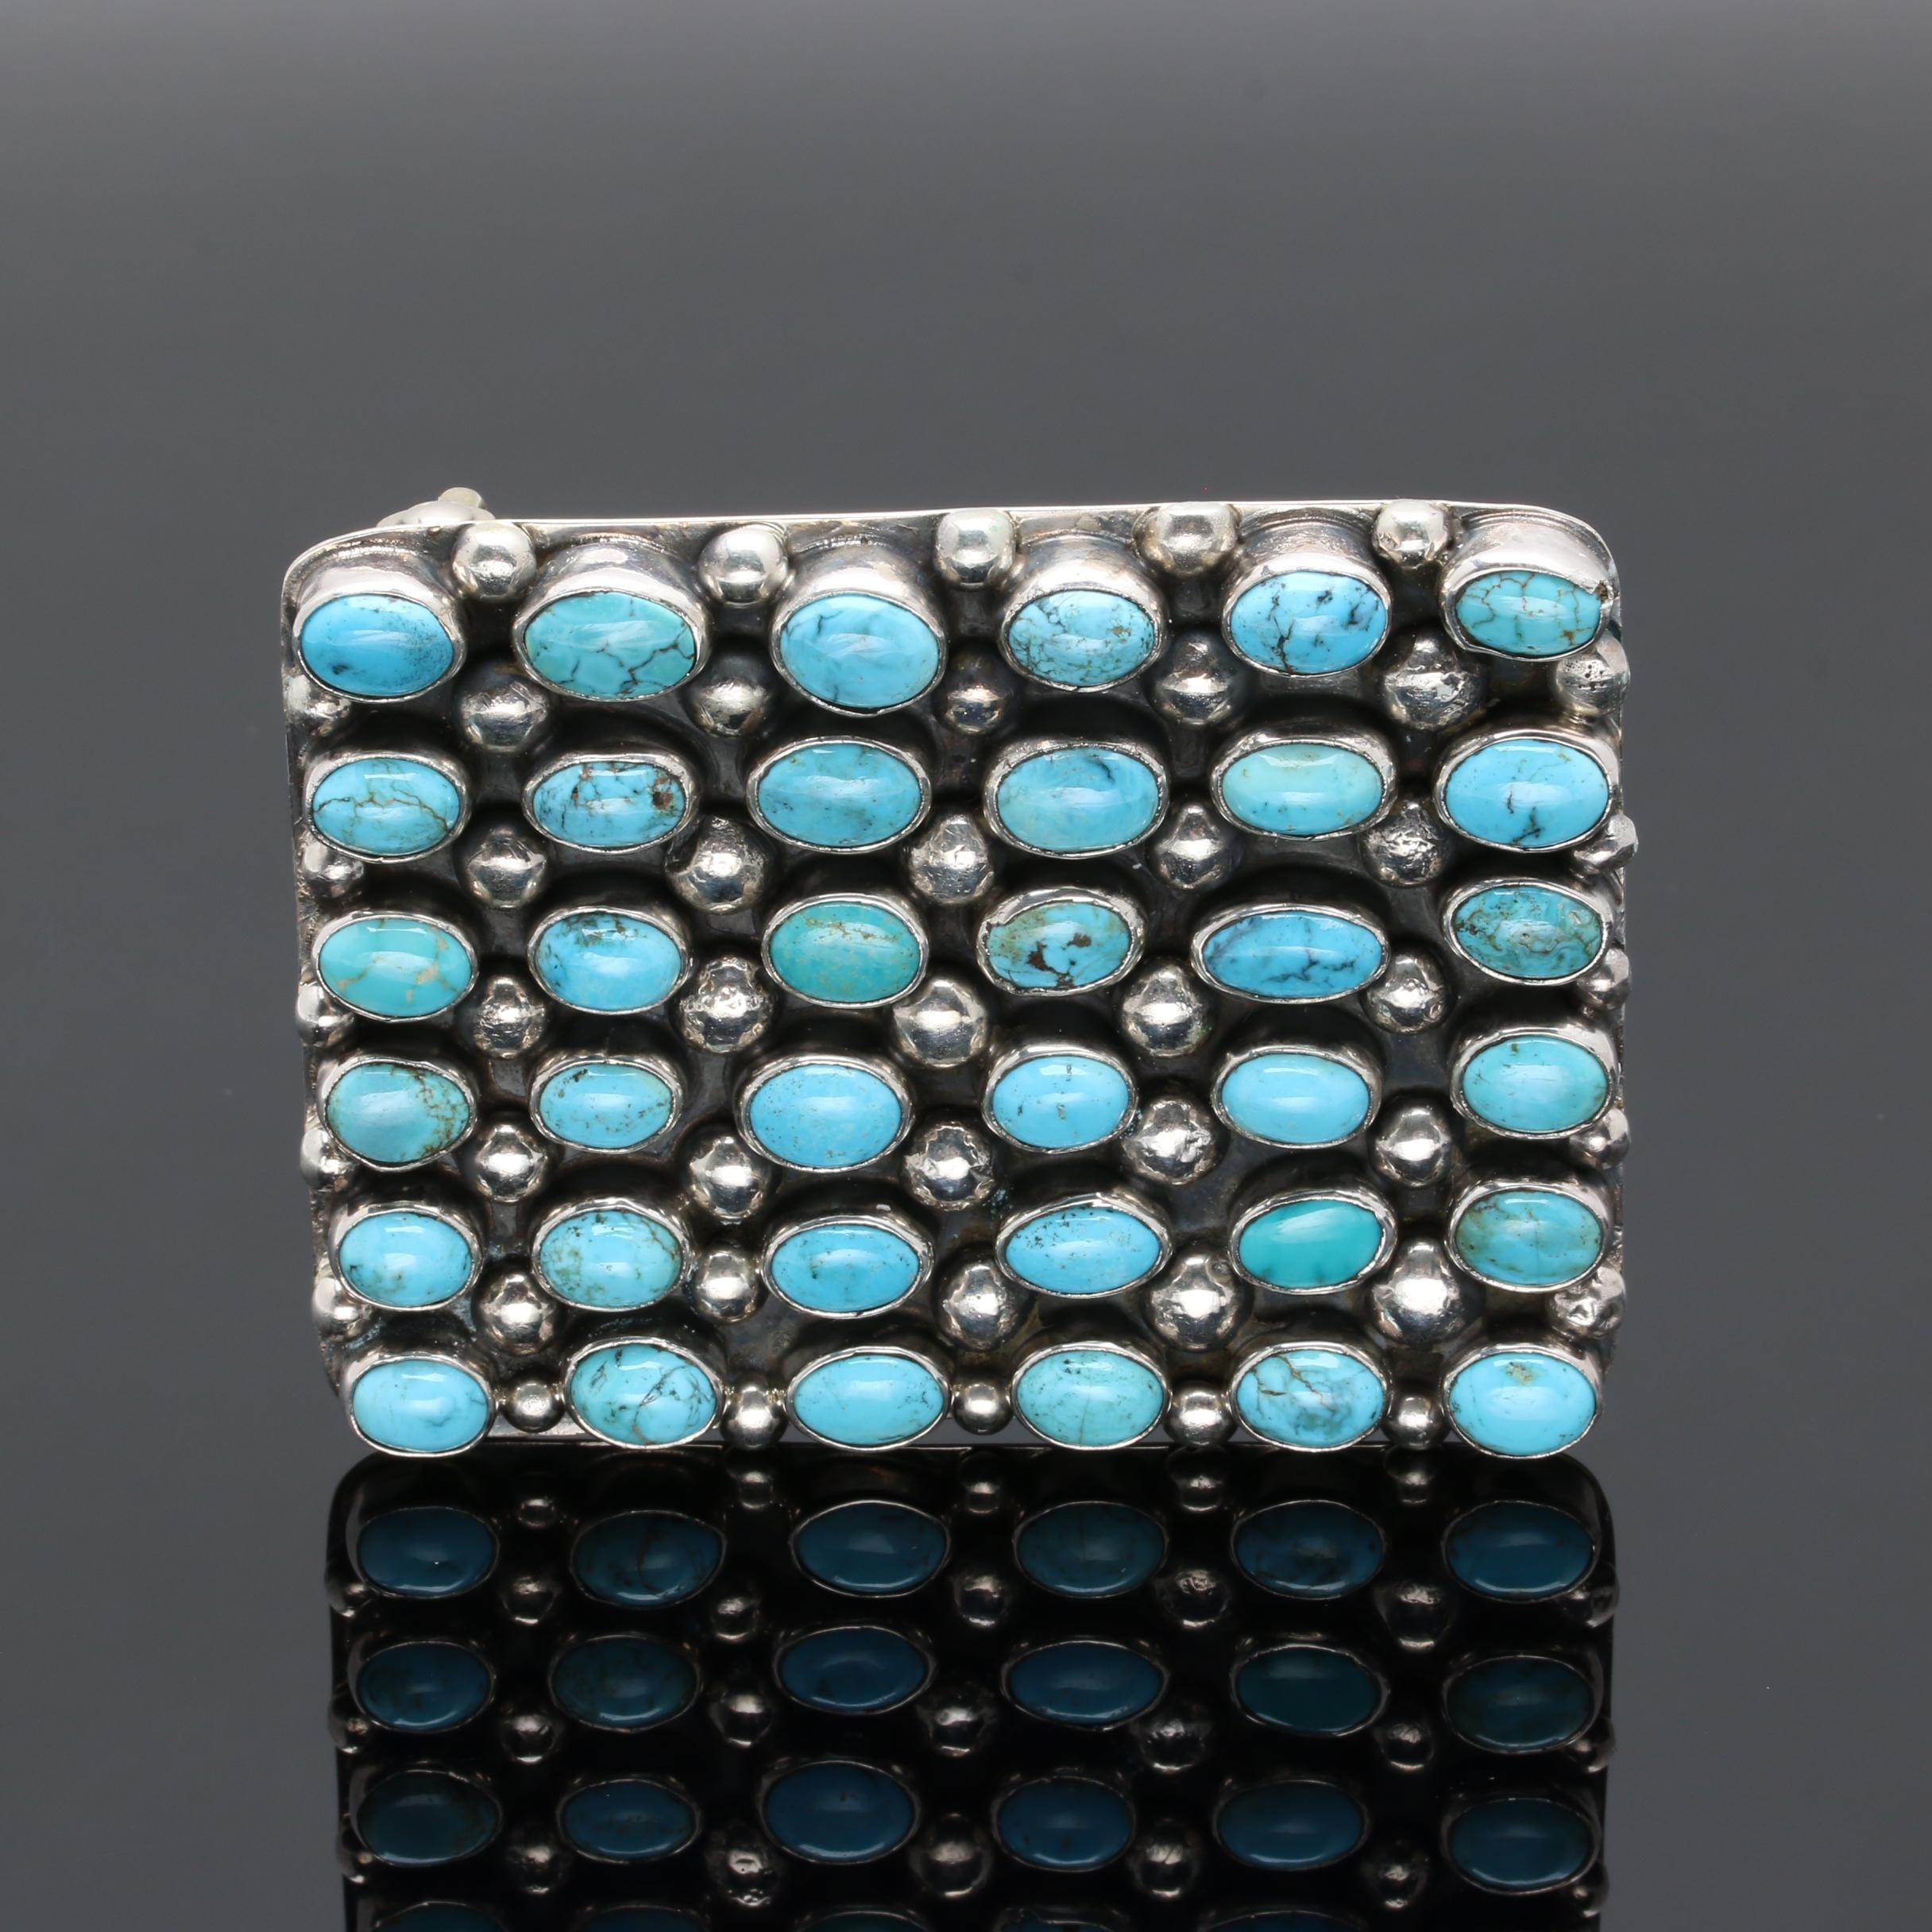 Cecil Atencio Navajo Diné Sterling Silver Turquoise Cluster Belt Buckle